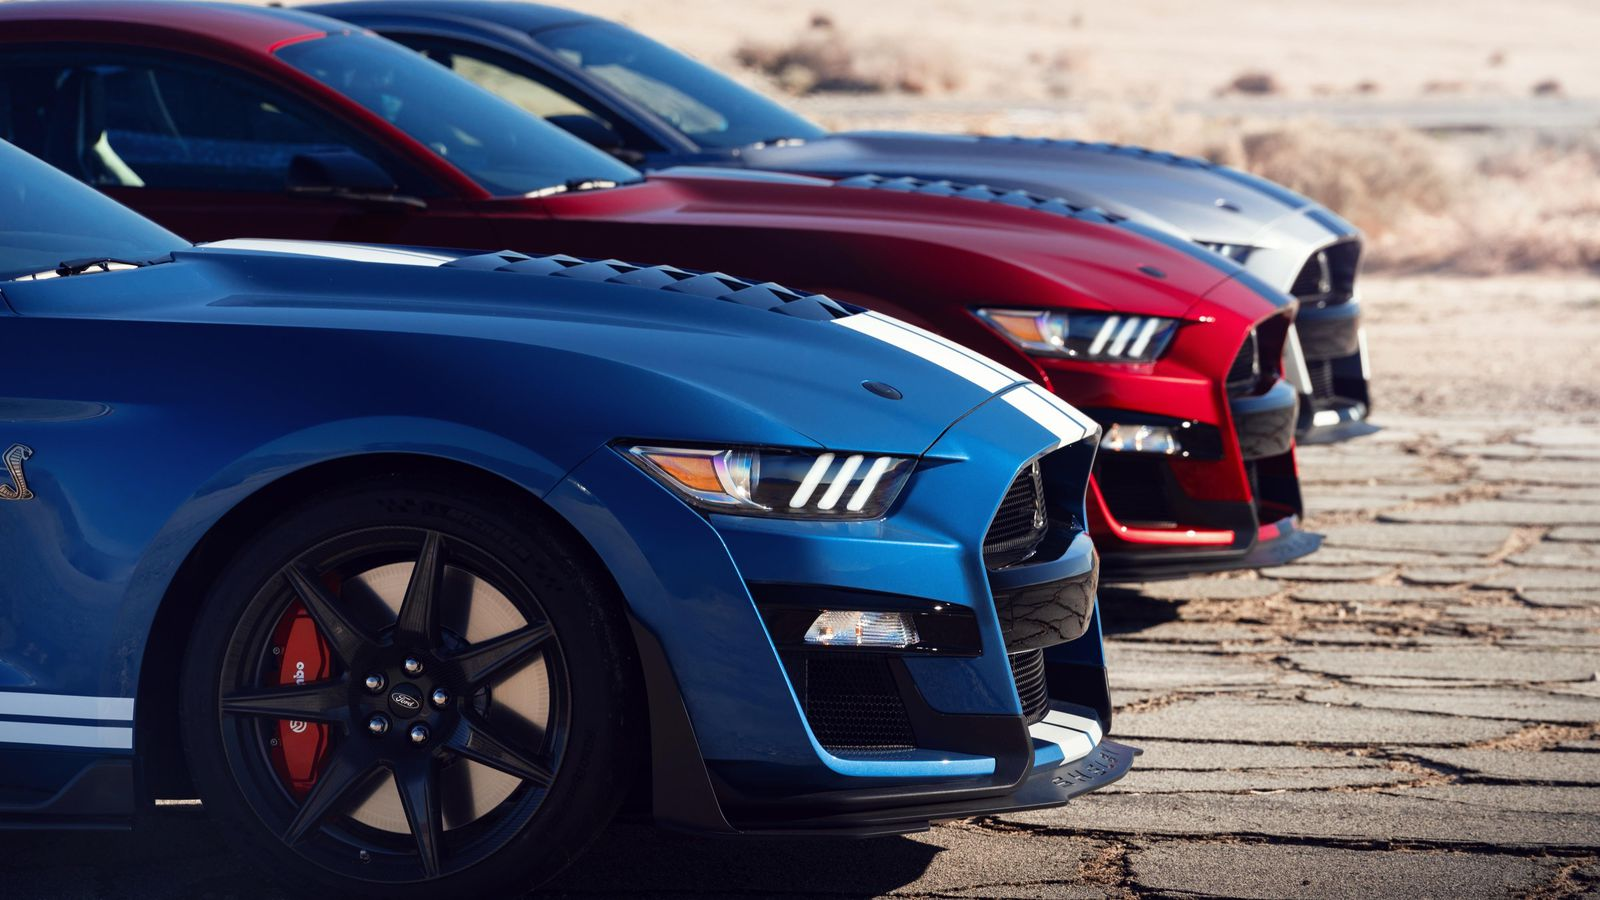 The 2020 Mustang Shelby was sold at an auction whose proceeds were donated to charity.